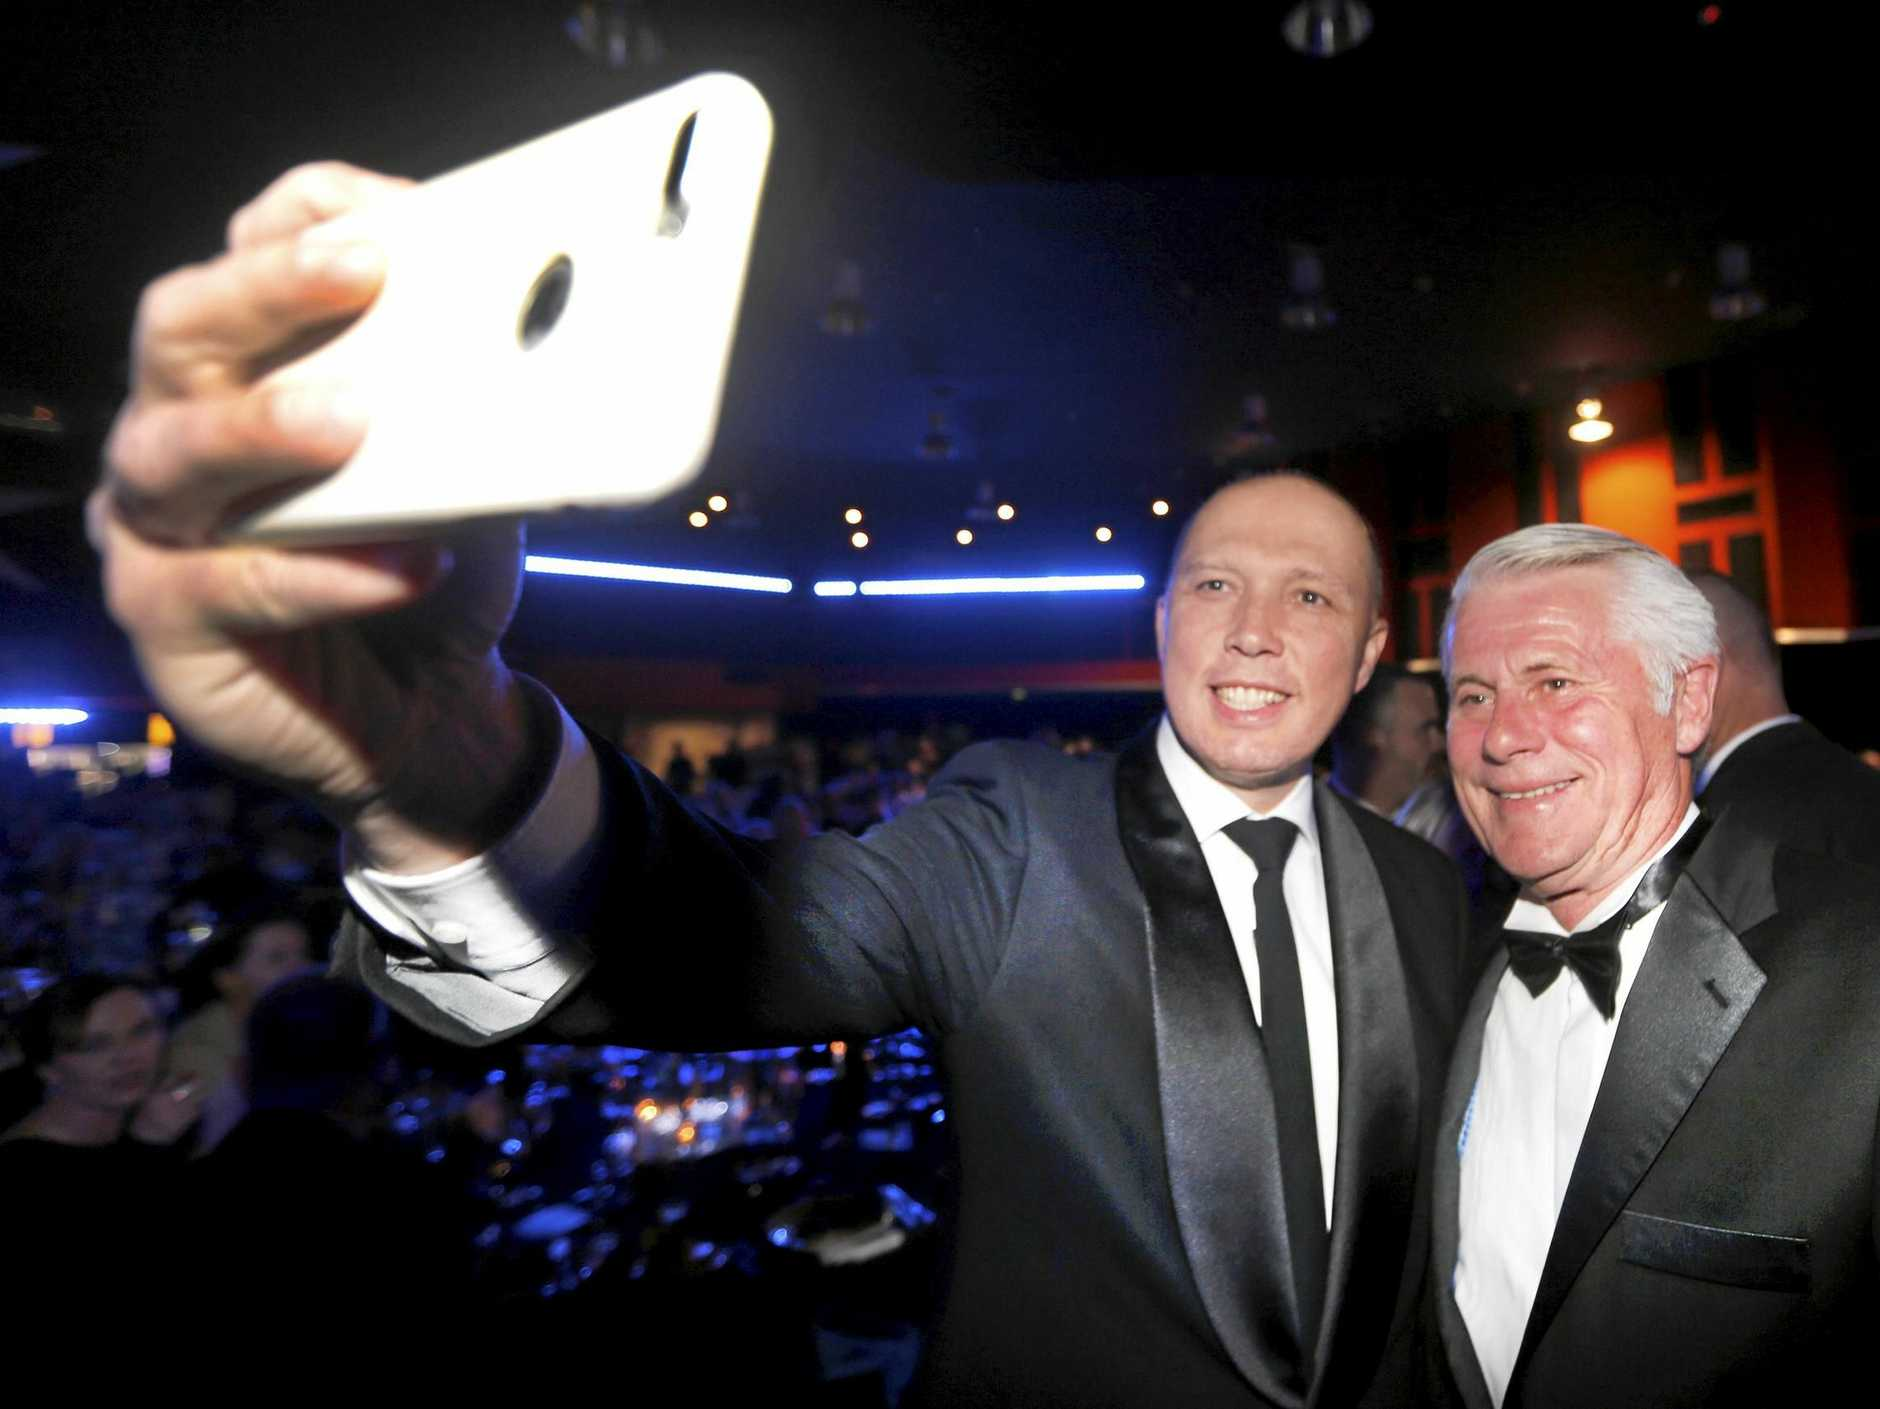 Former Home Affairs Minister Peter Dutton takes a selfie with Tweed MP Geoff Provest at the Police and Community Charity Ball at Tweed Heads on Saturday.